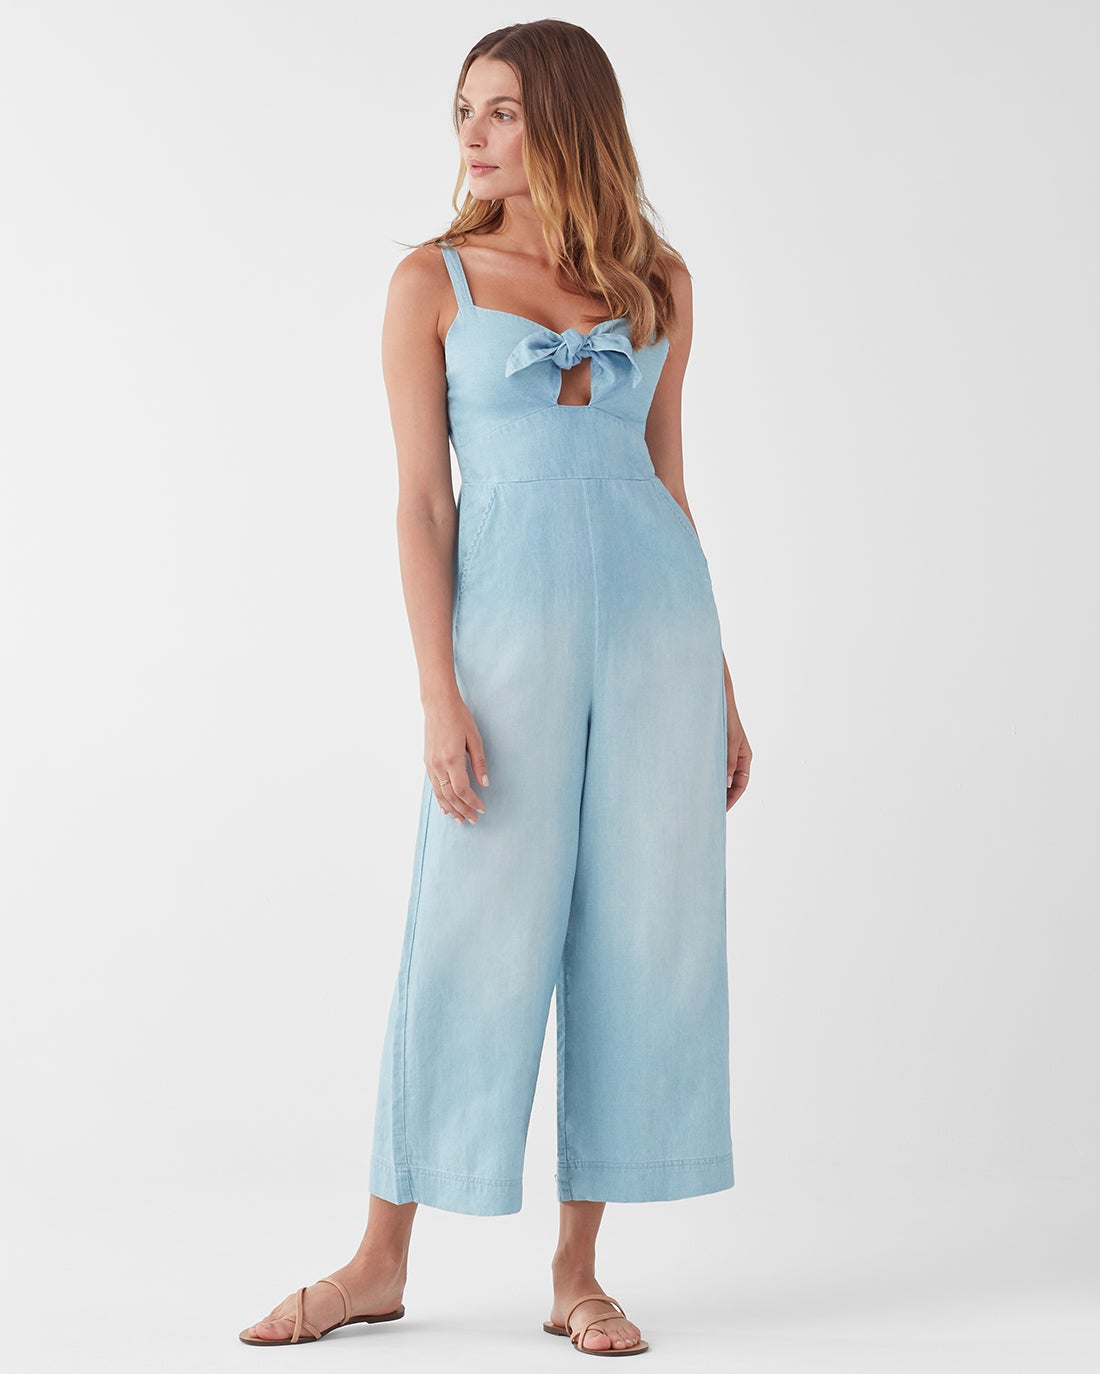 Splendid - Luau Tie Front Jumpsuit / $178.00Too hot to think of an outfit? This jumpsuit is the perfect throw on piece (and it's made out of a cotton, linen, and Tencel blend)